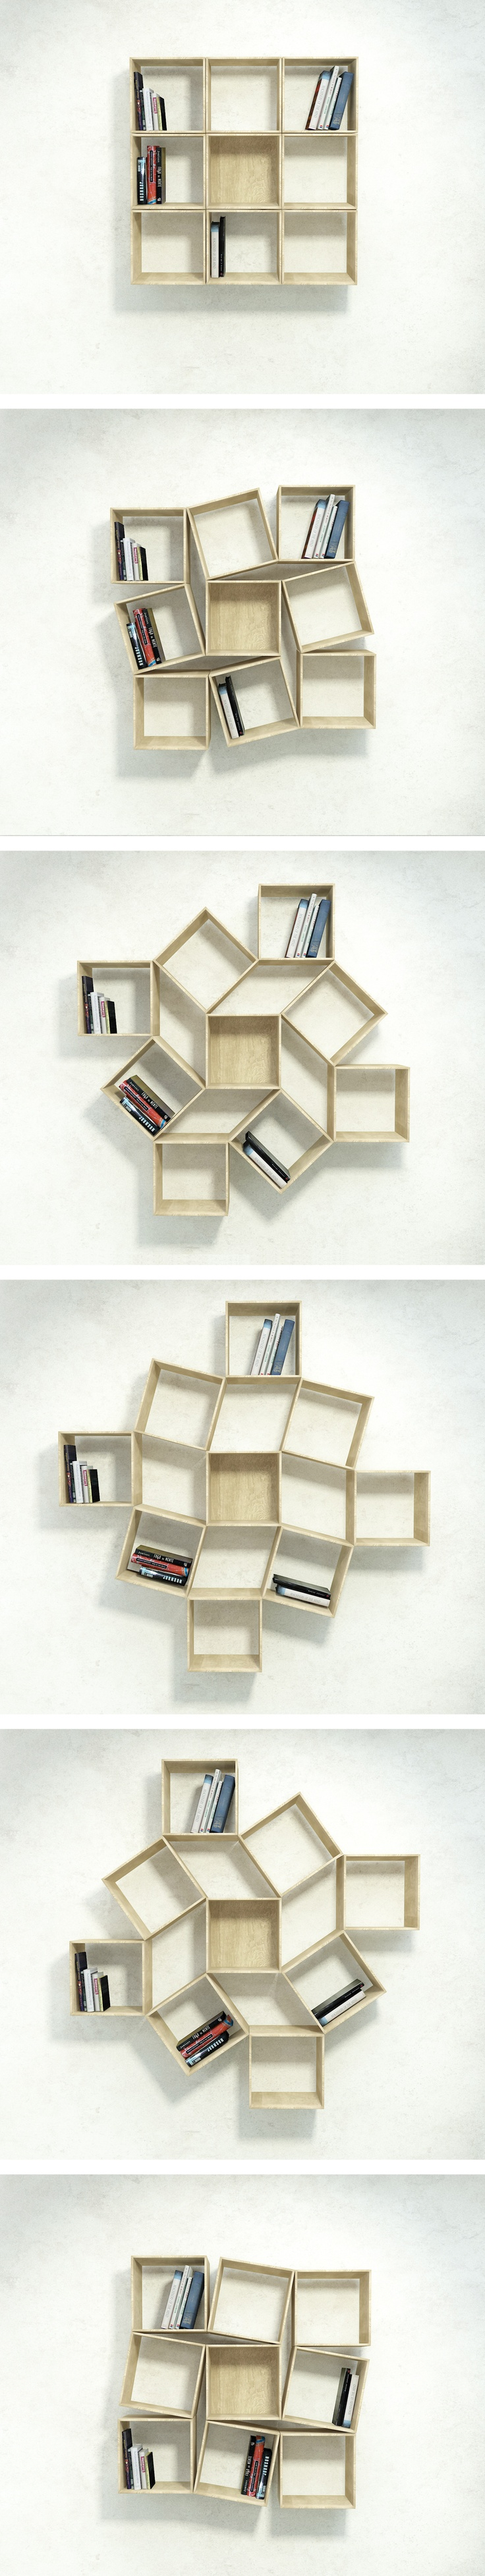 Woodworking Plans Rotating Bookshelf - WoodWorking Projects & Plans